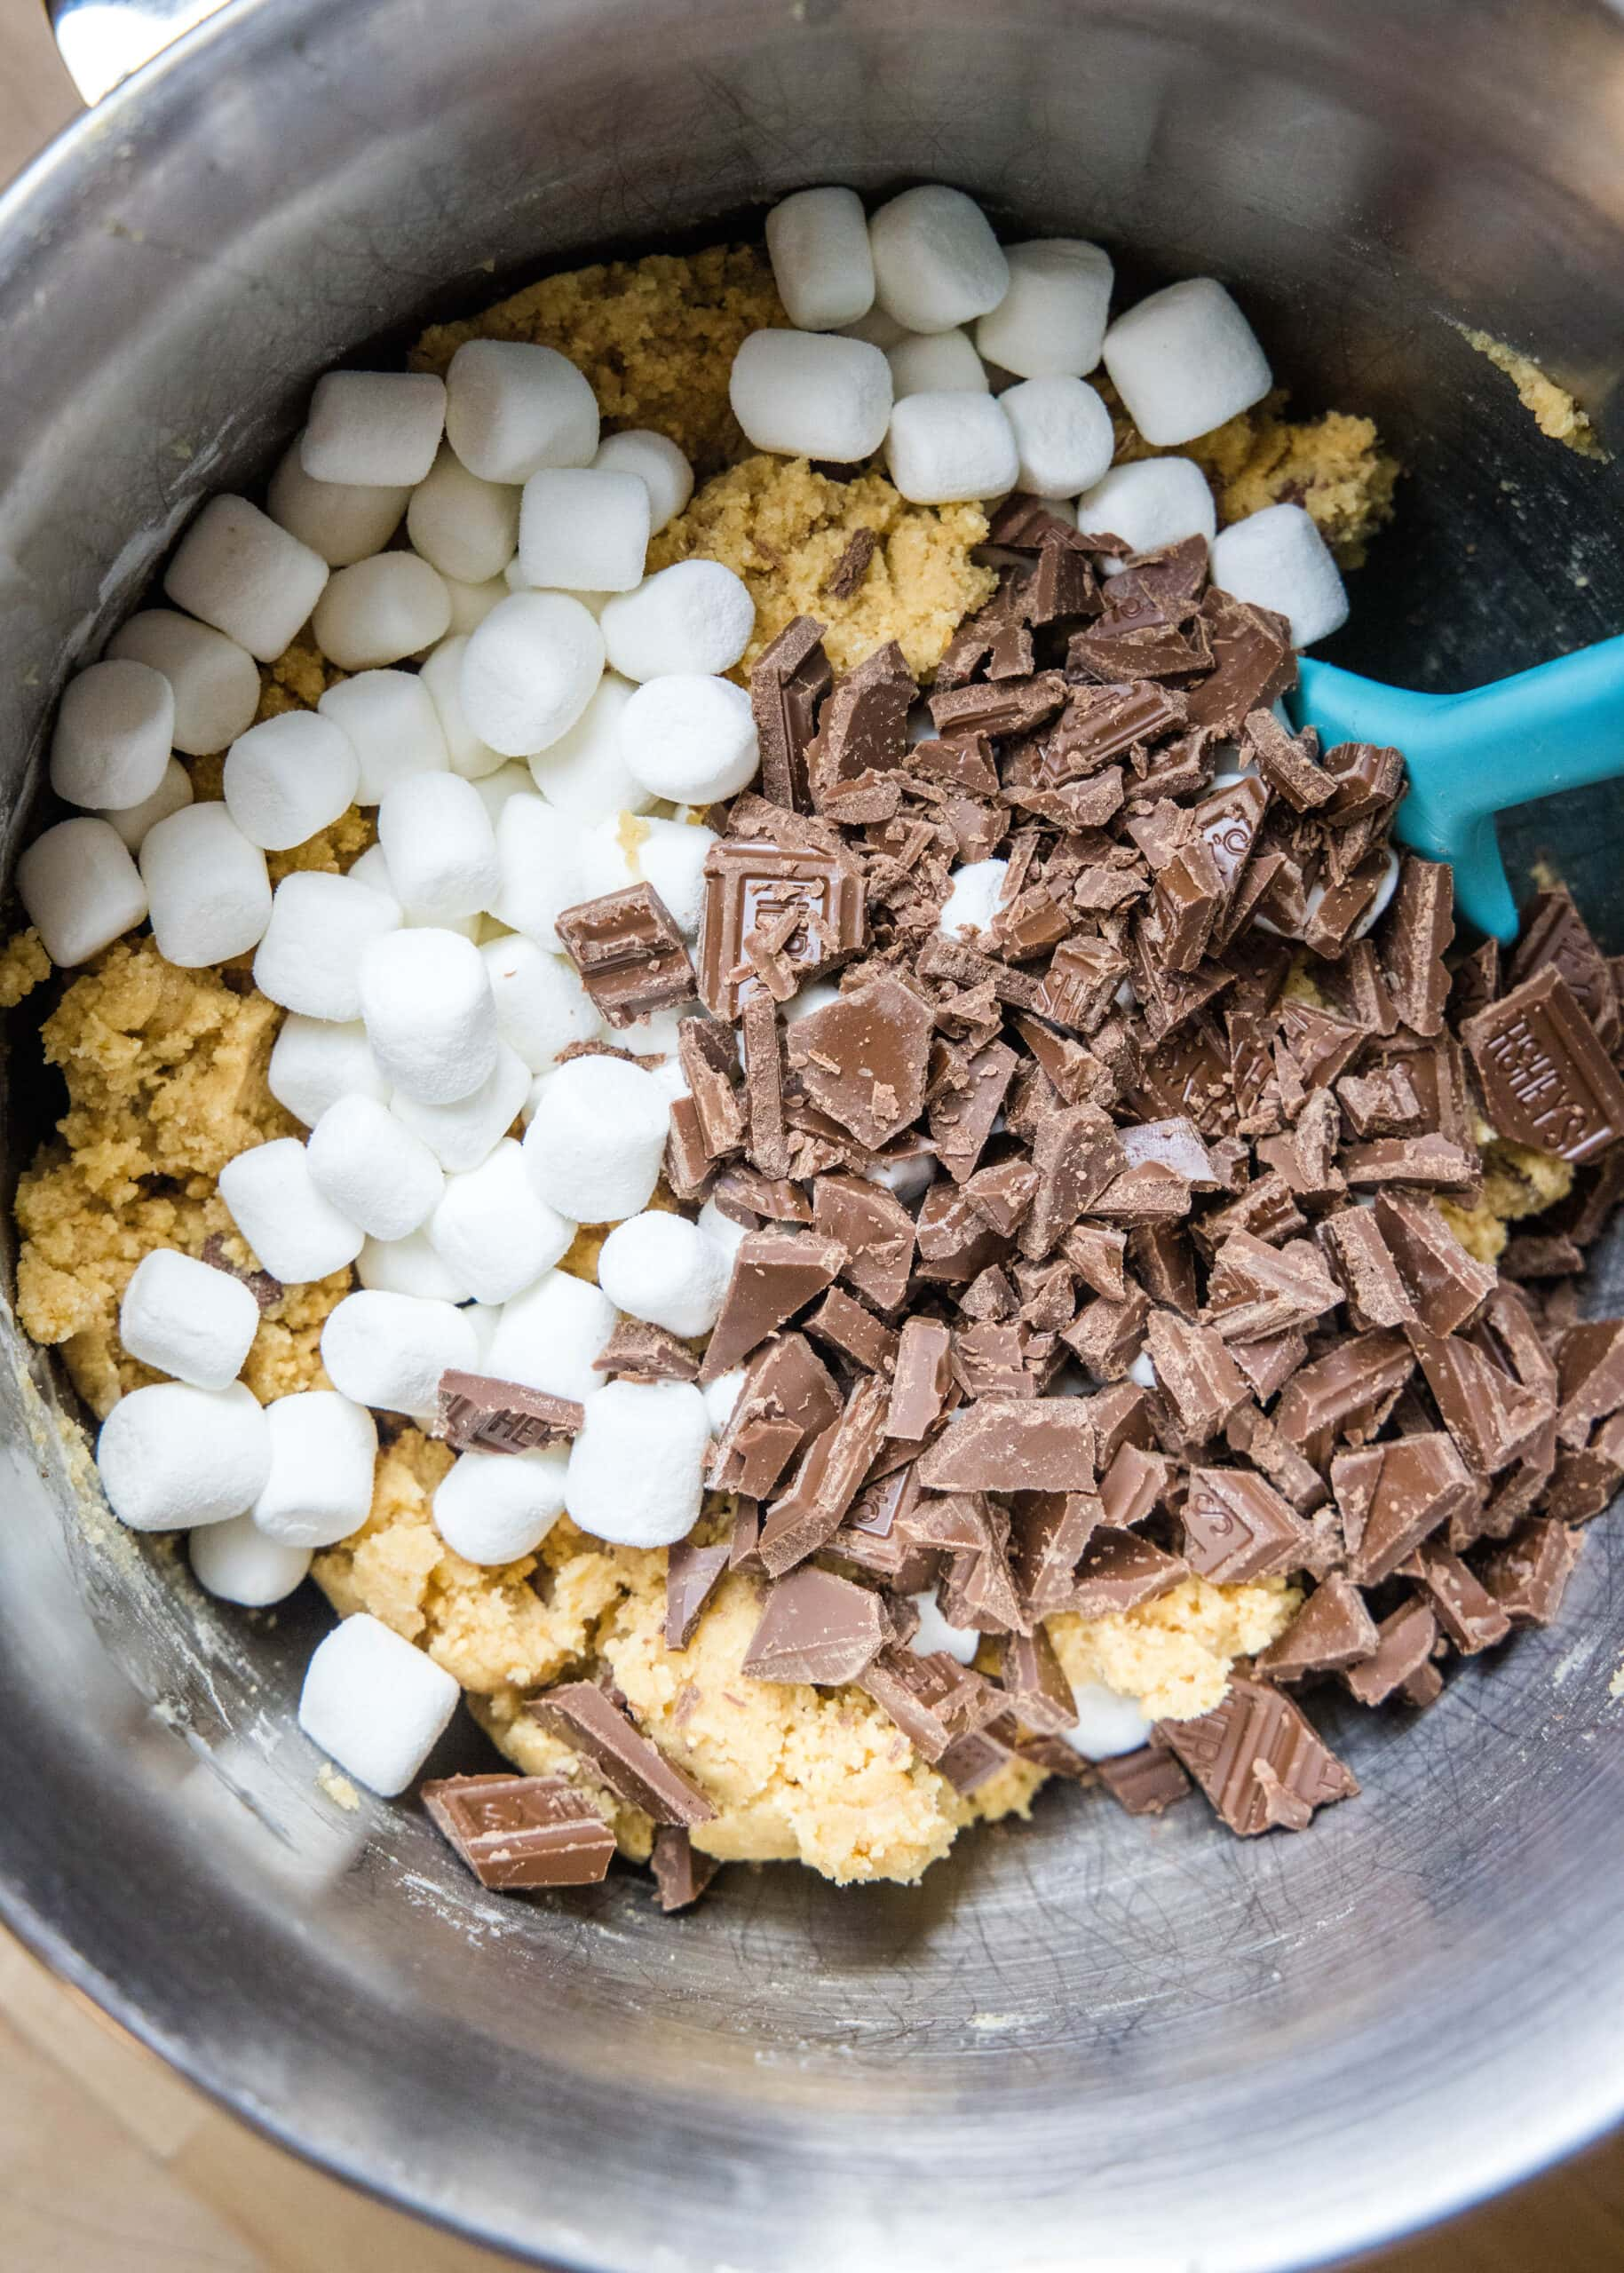 cookie dough in a mixing bowl with chocolate and marshmallows on top